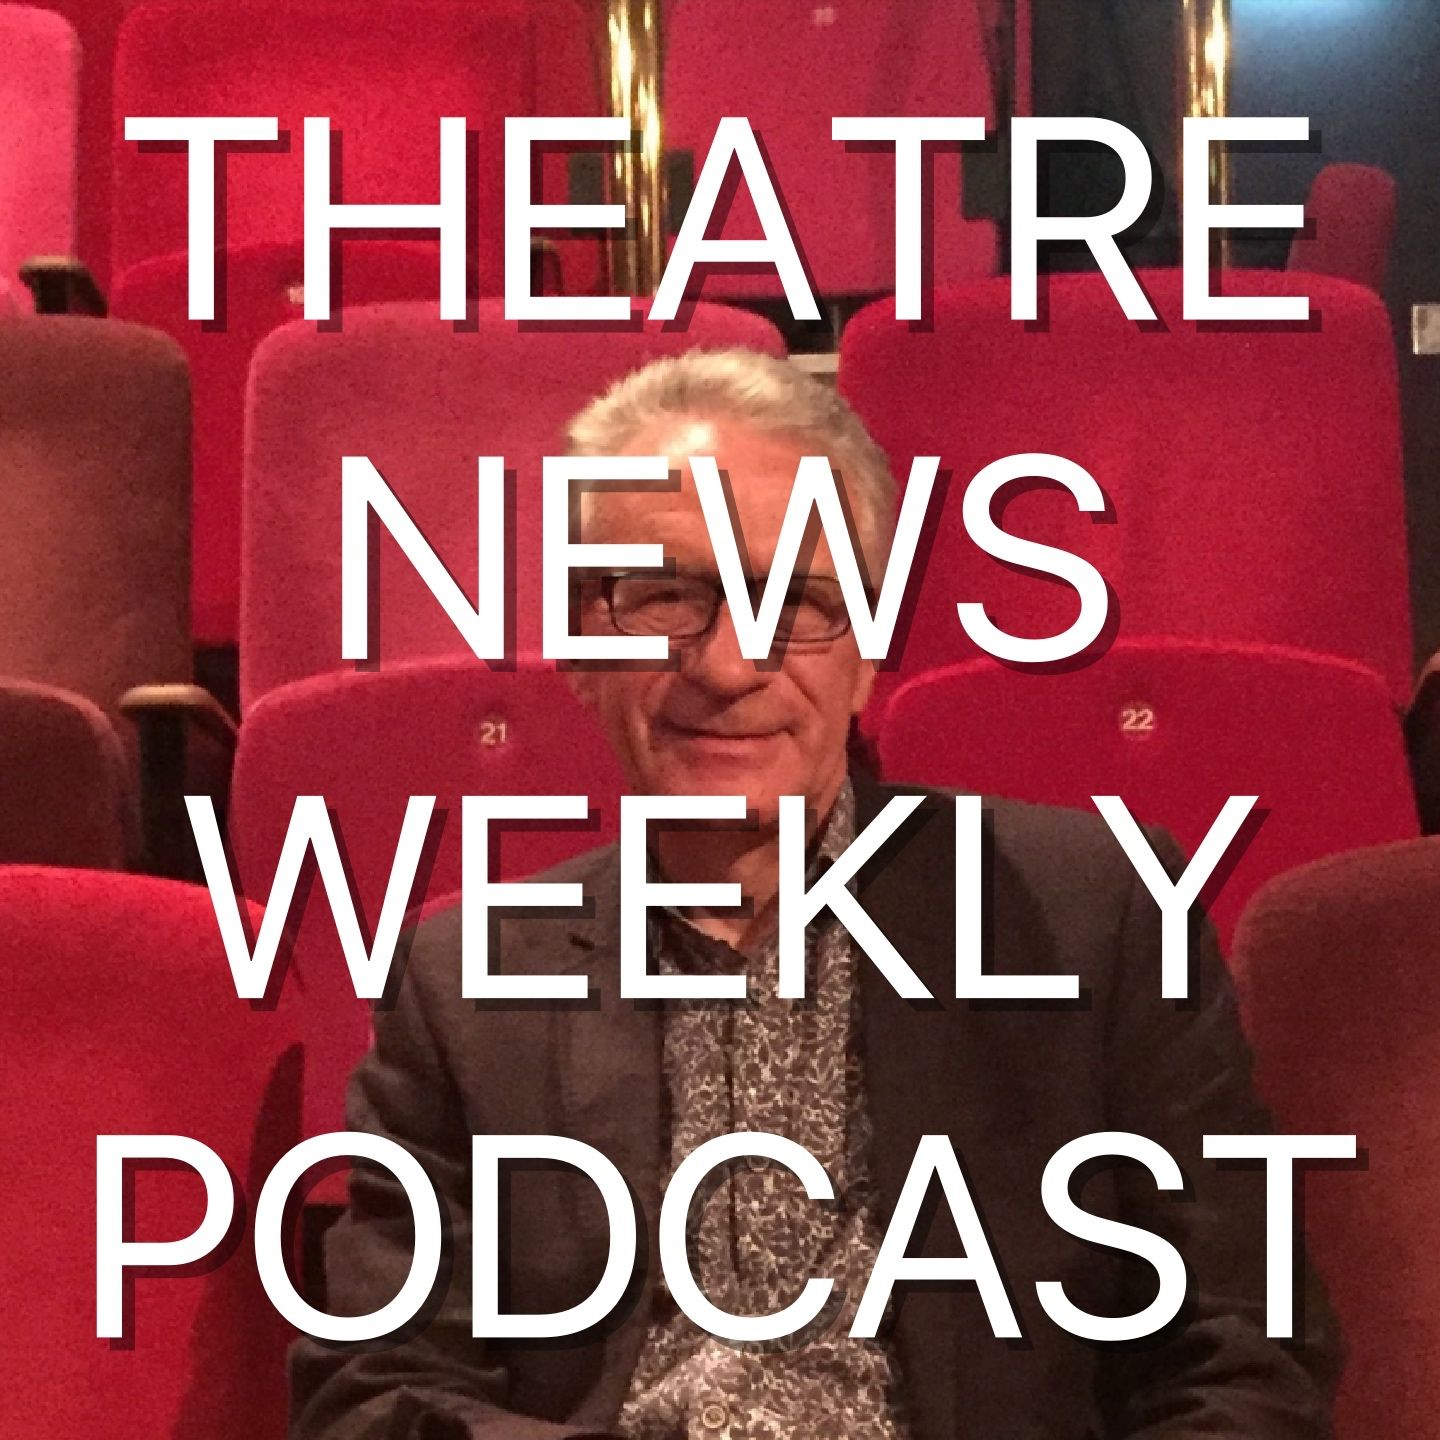 Theatre News Weekly 17 July 2018